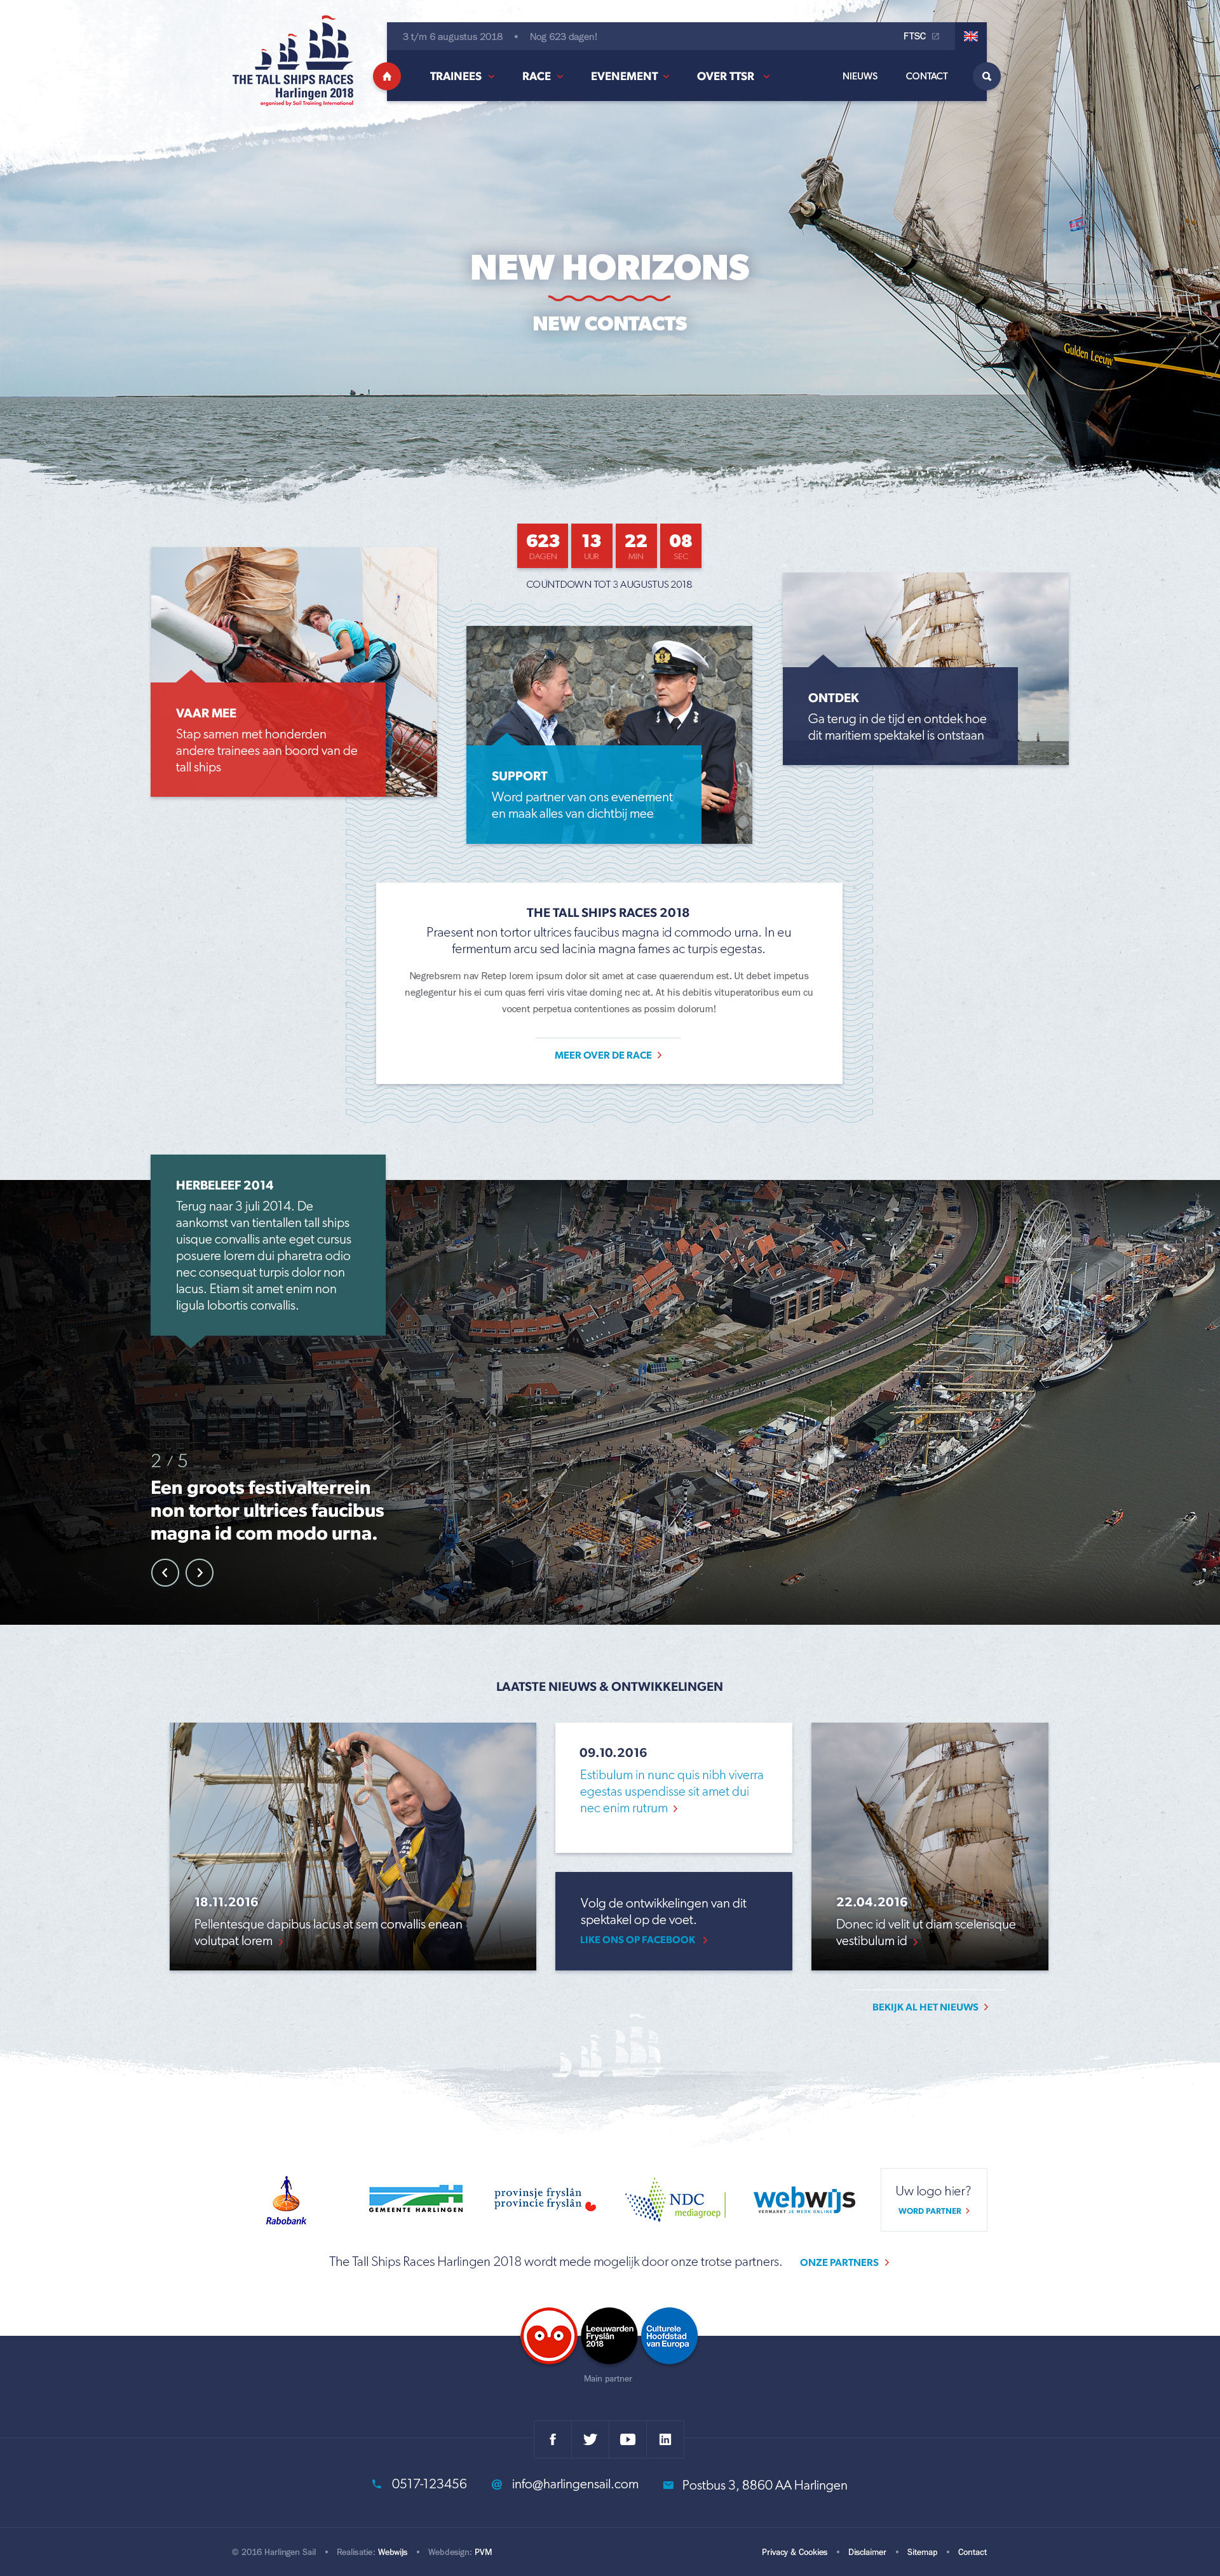 The Tall Ships Races 2018 Harlingen